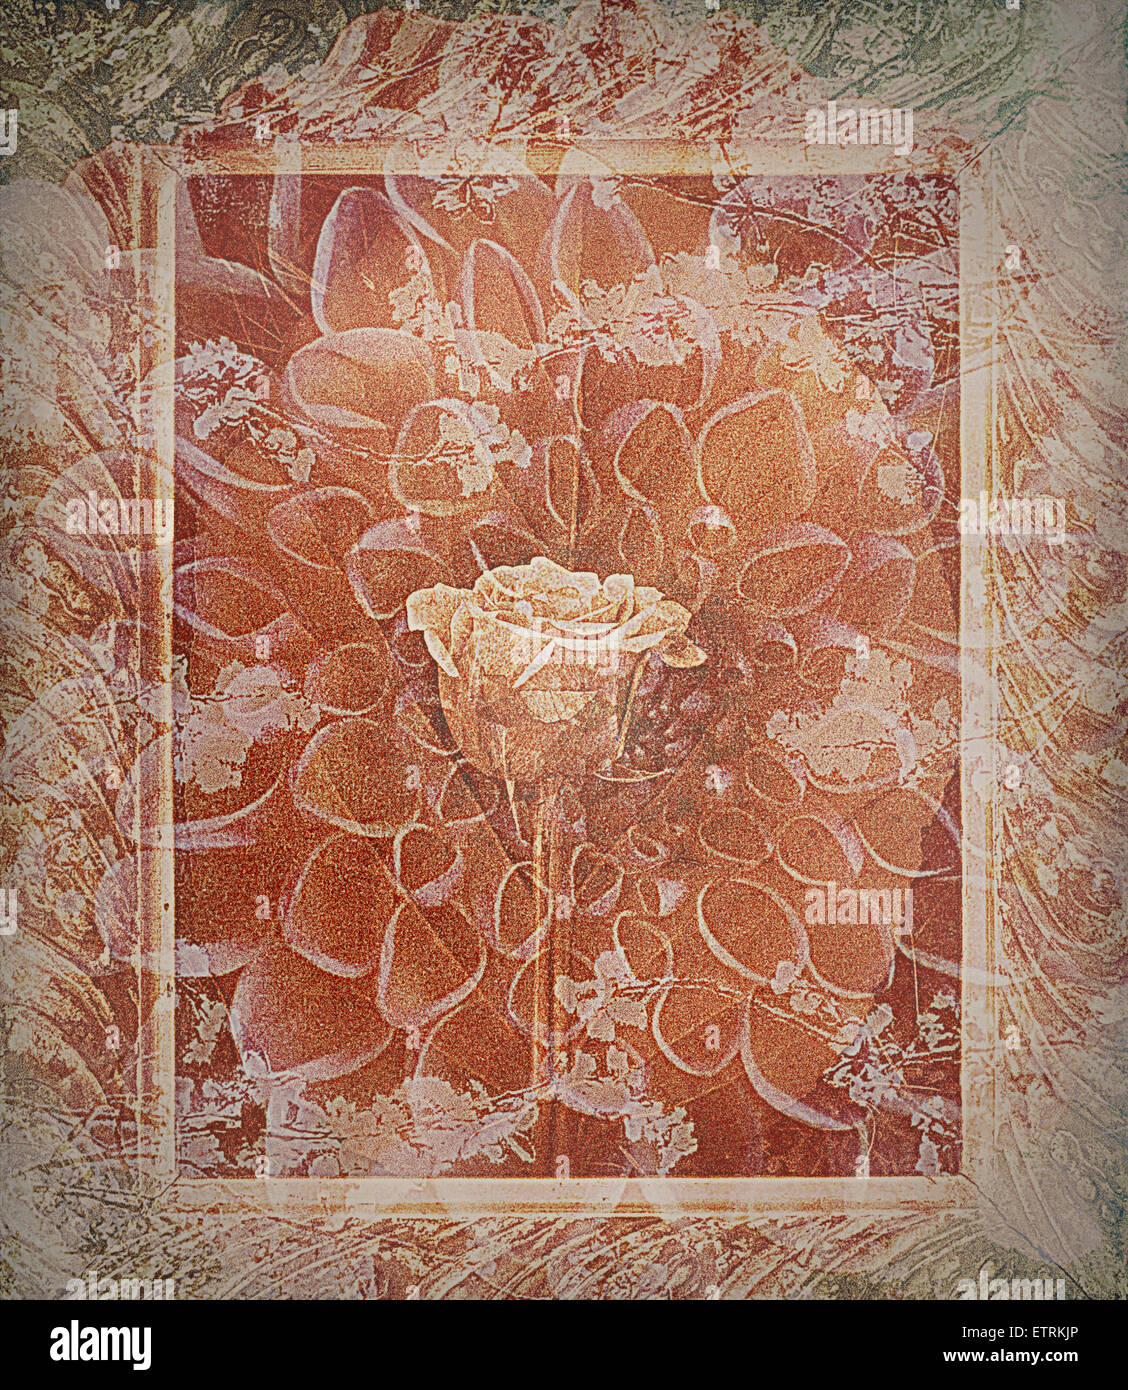 single rose in earthy colors vintage style in frame, photographic layer work, - Stock Image